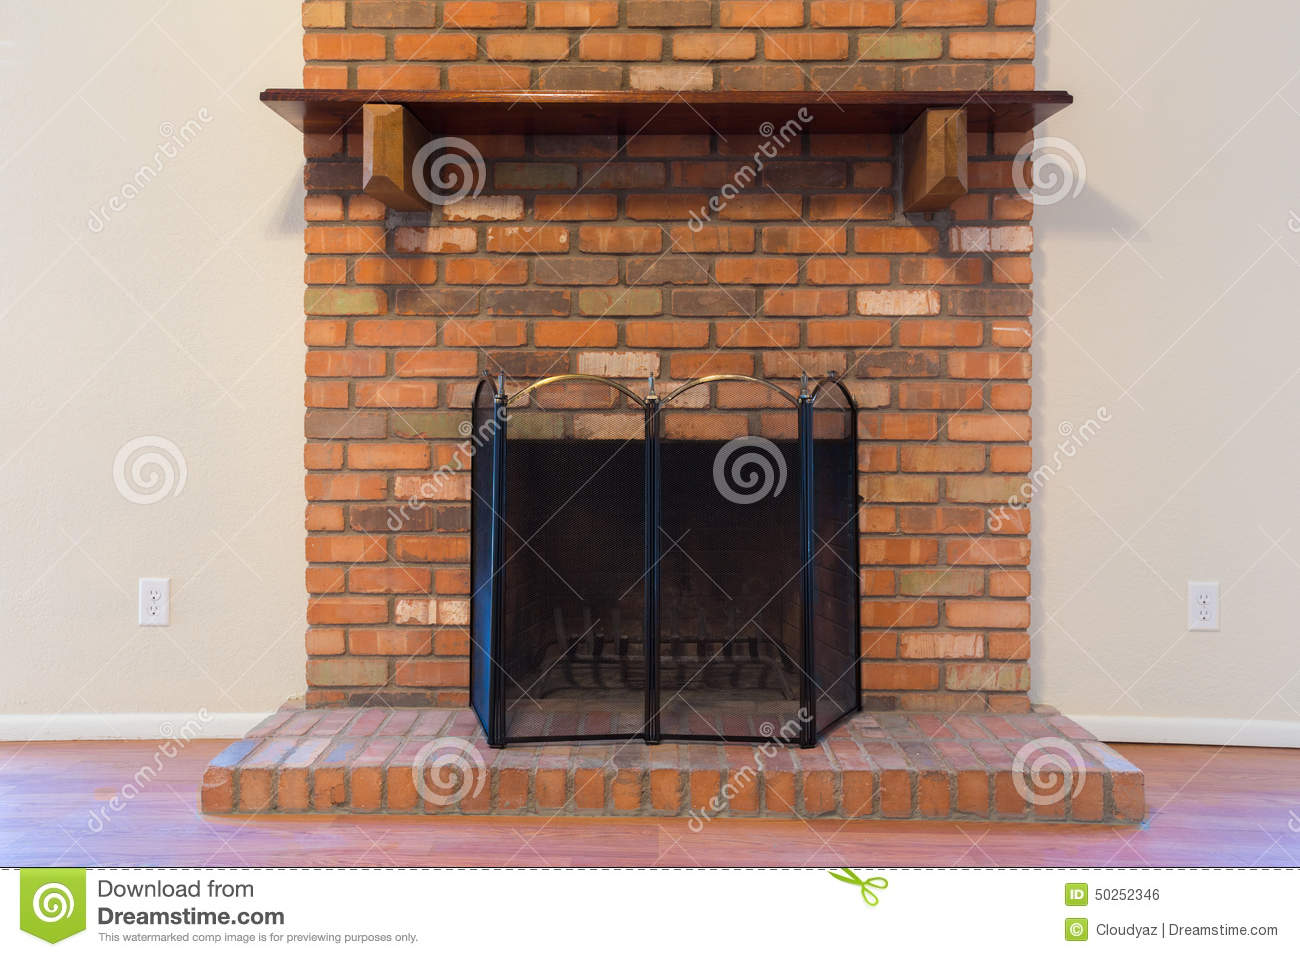 The Old Brick Fireplace Royalty Free Stock Photos - Image: 18315458